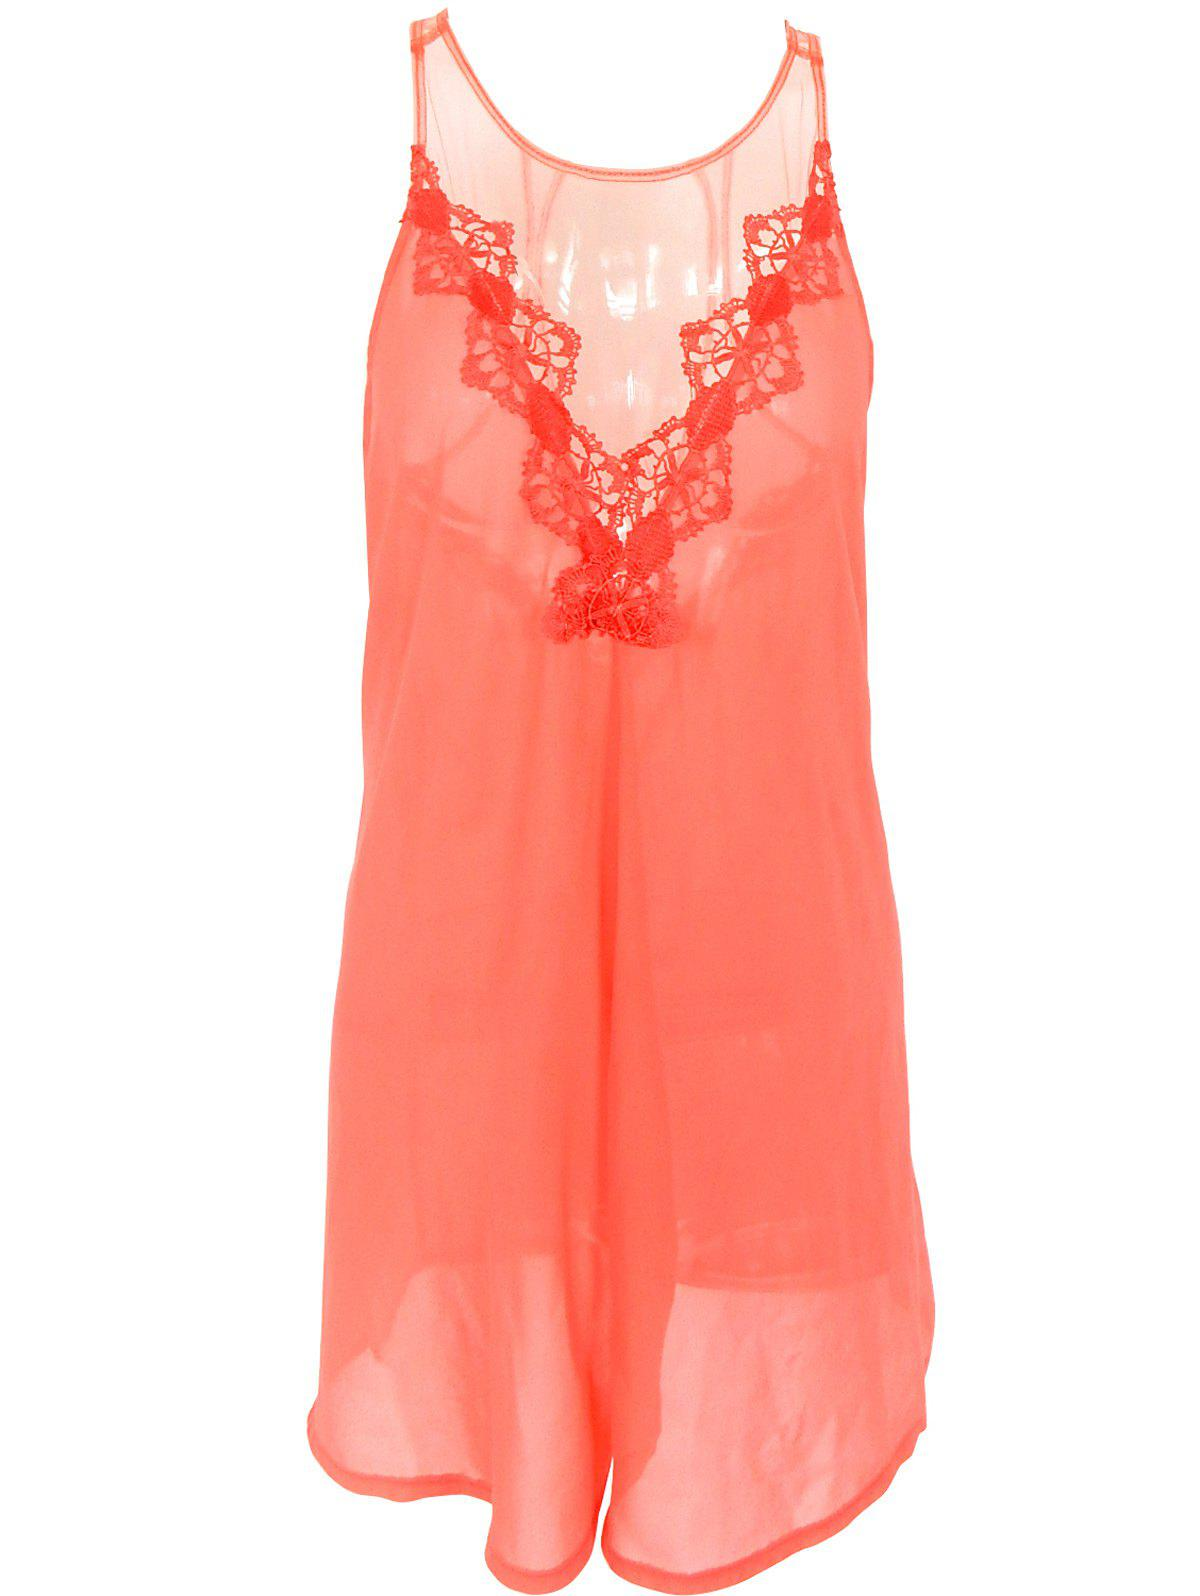 Lace Insert See-Through Backless Dress - ORANGE RED XL